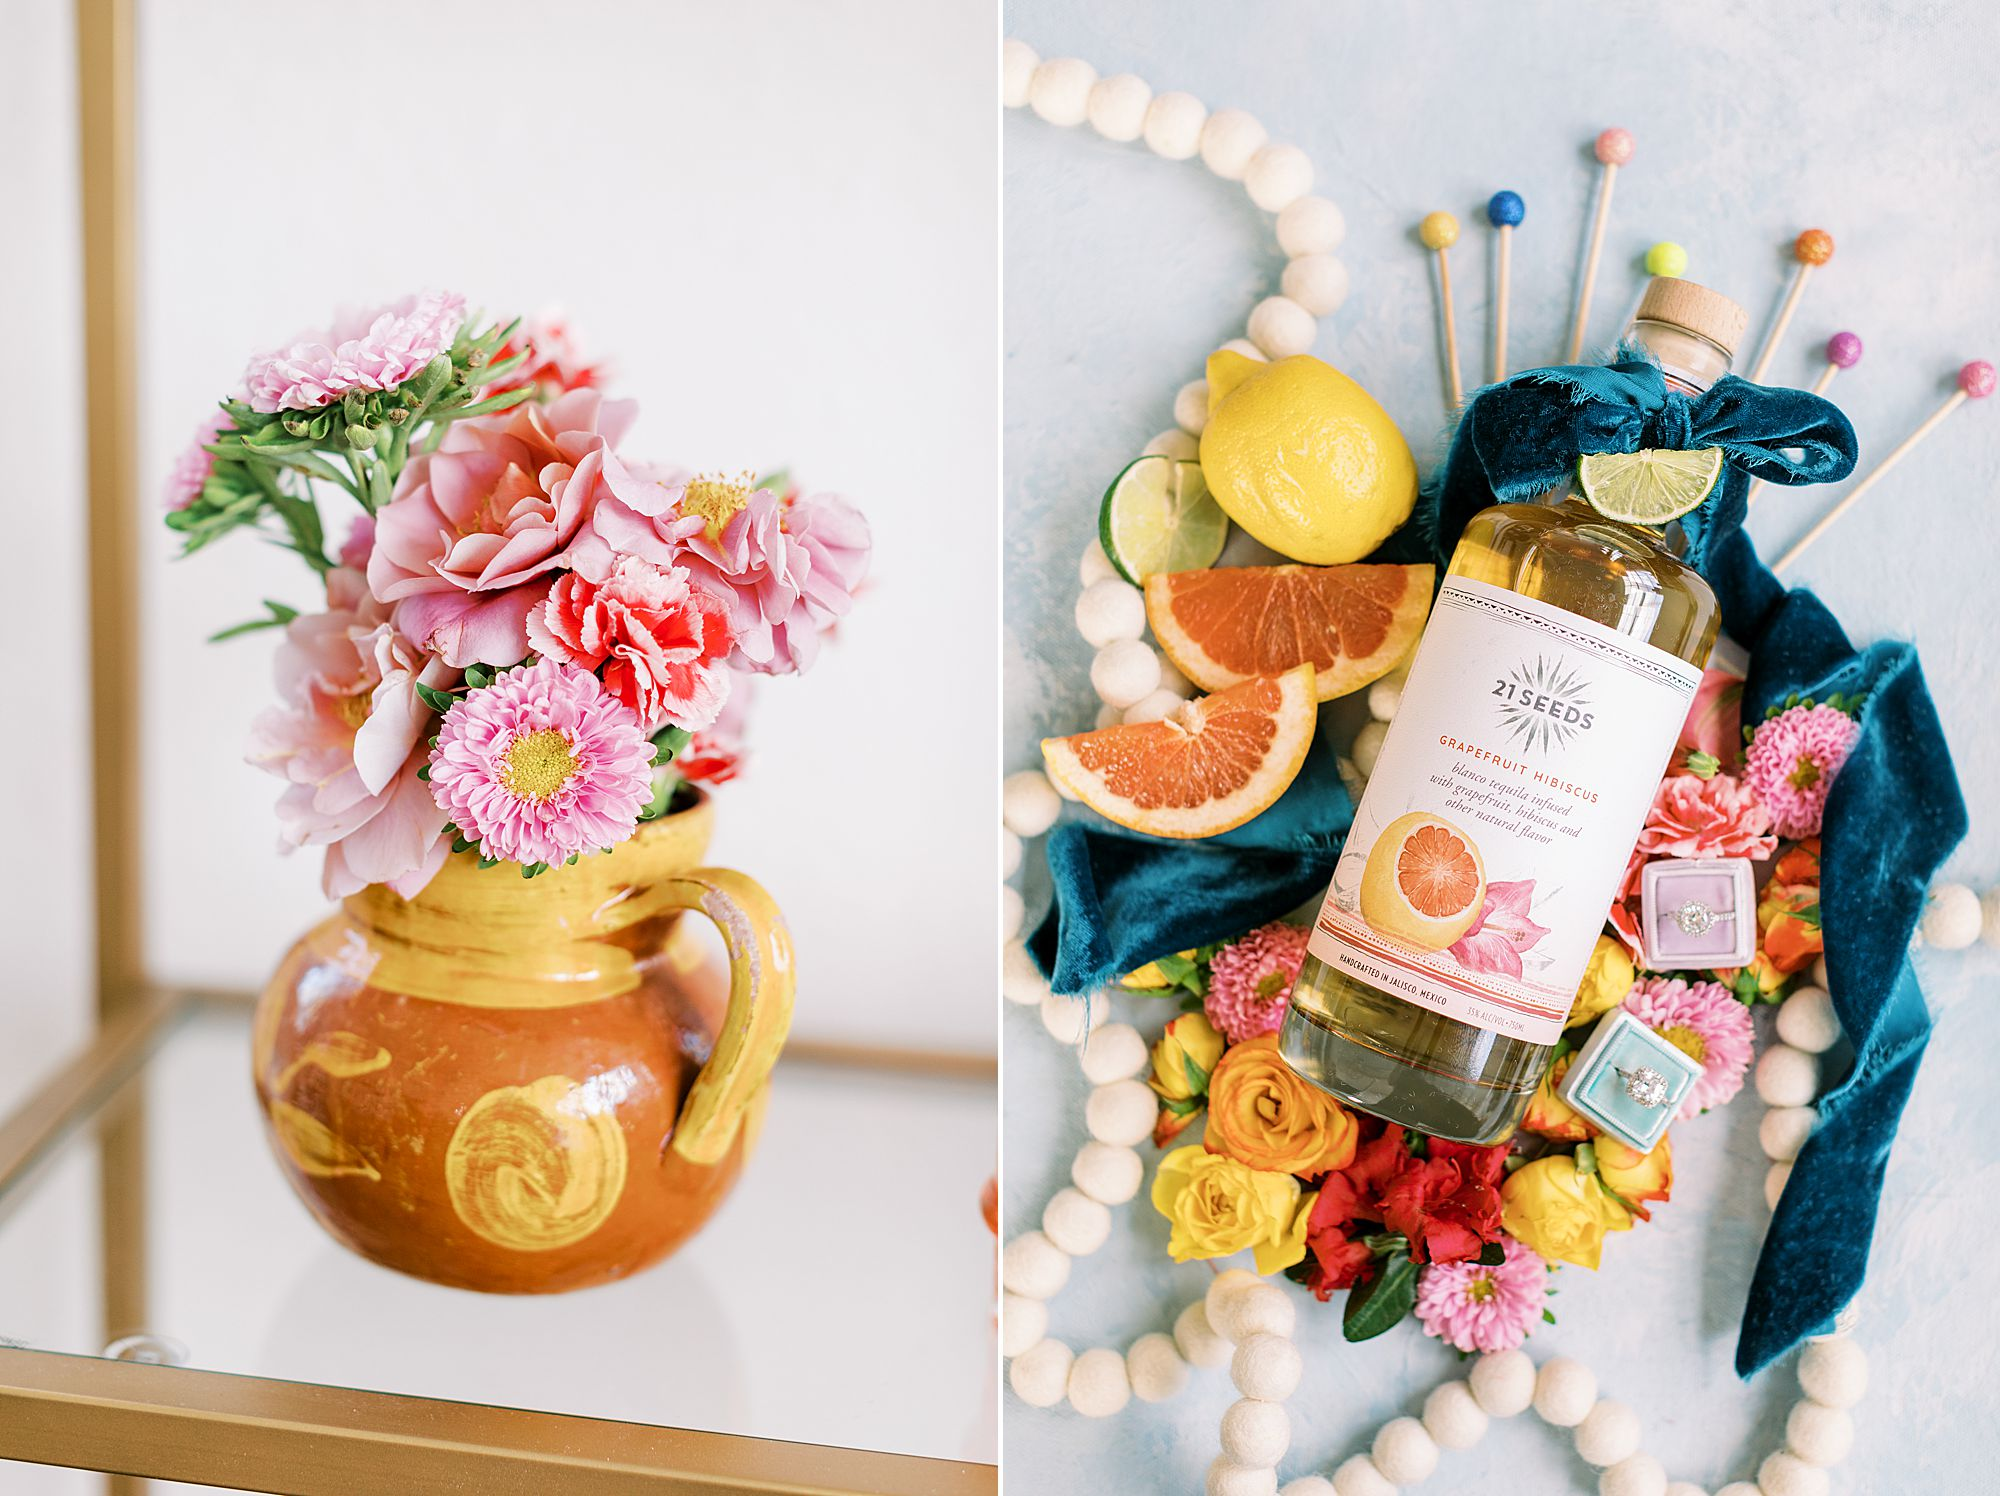 Cinco De Mayo Inspiration for Your FIesta - Party Crush Studio and Ashley Baumgartner_0020.jpg